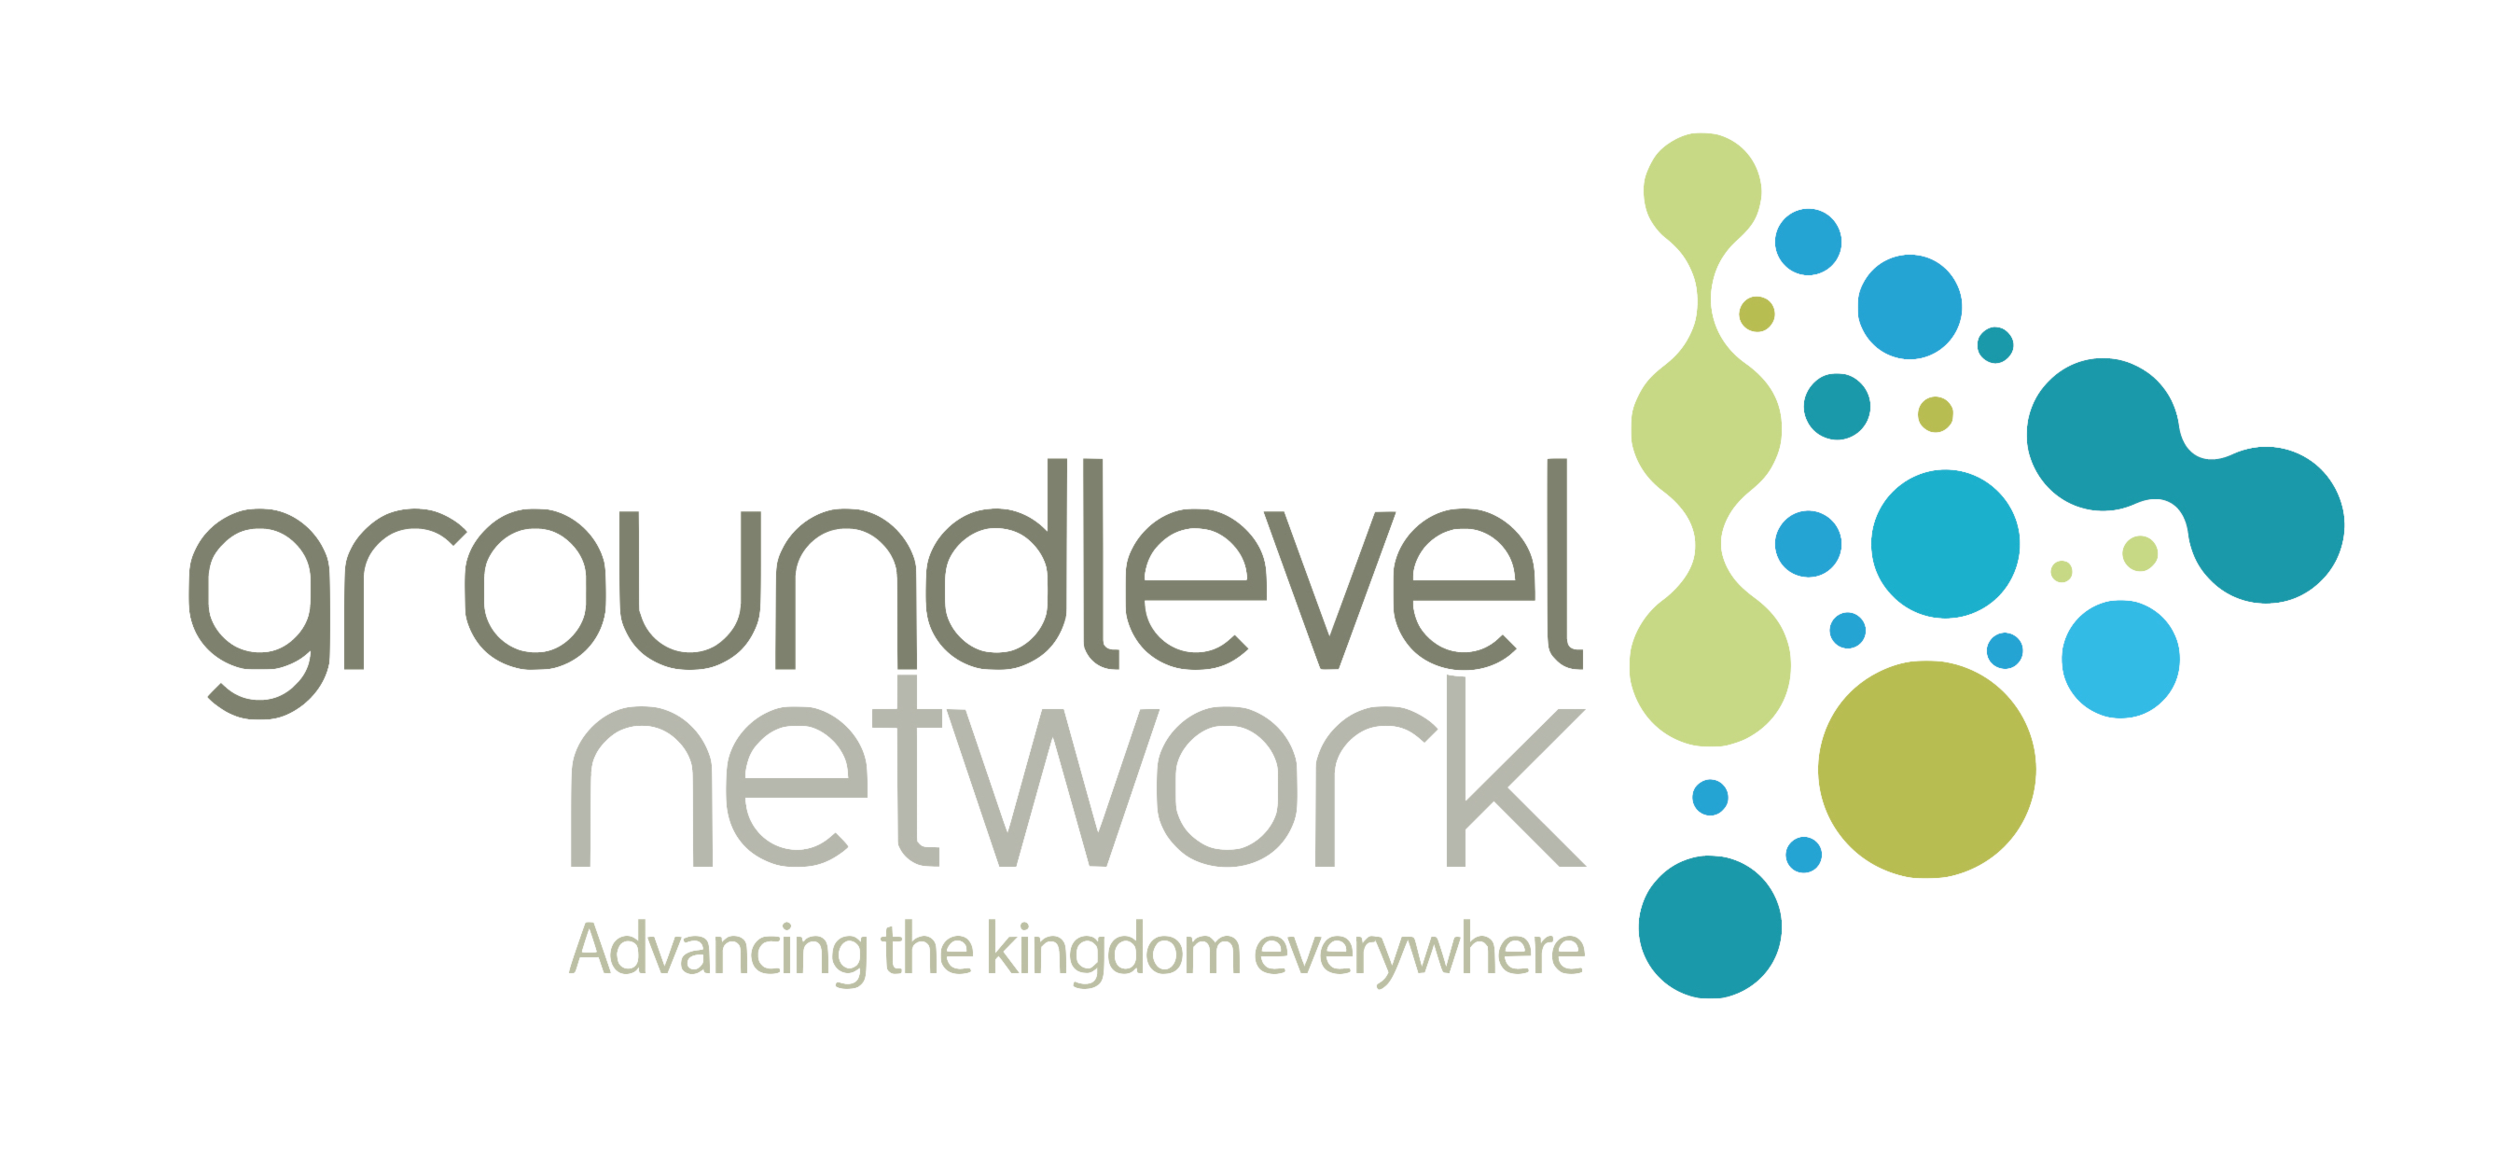 GROUND LEVEL NETWORK LOGO 2018 FINAL - Cropped.png